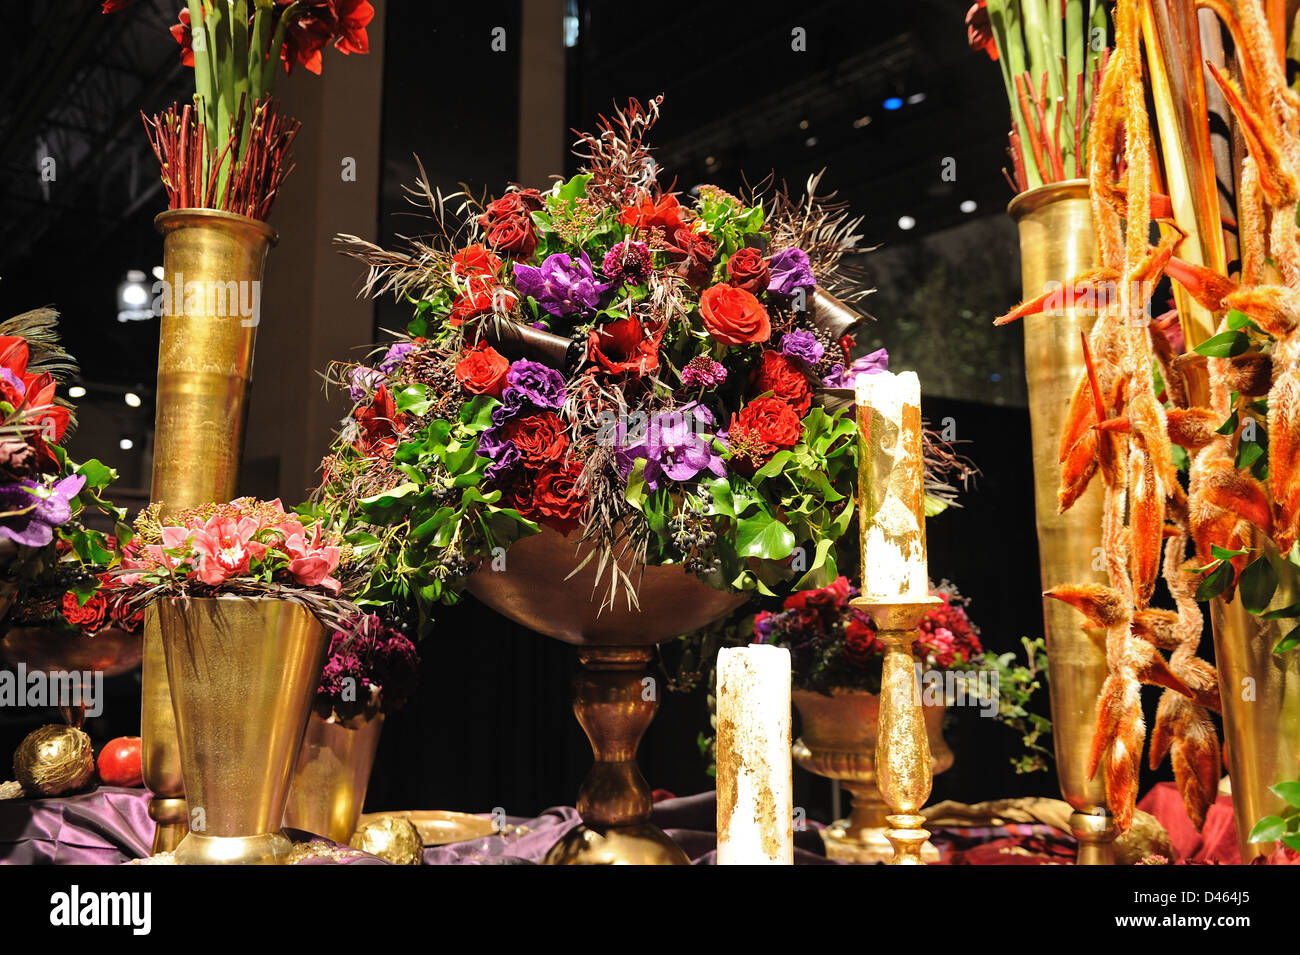 Largest Flower Show Stock Photos Largest Flower Show Stock Images